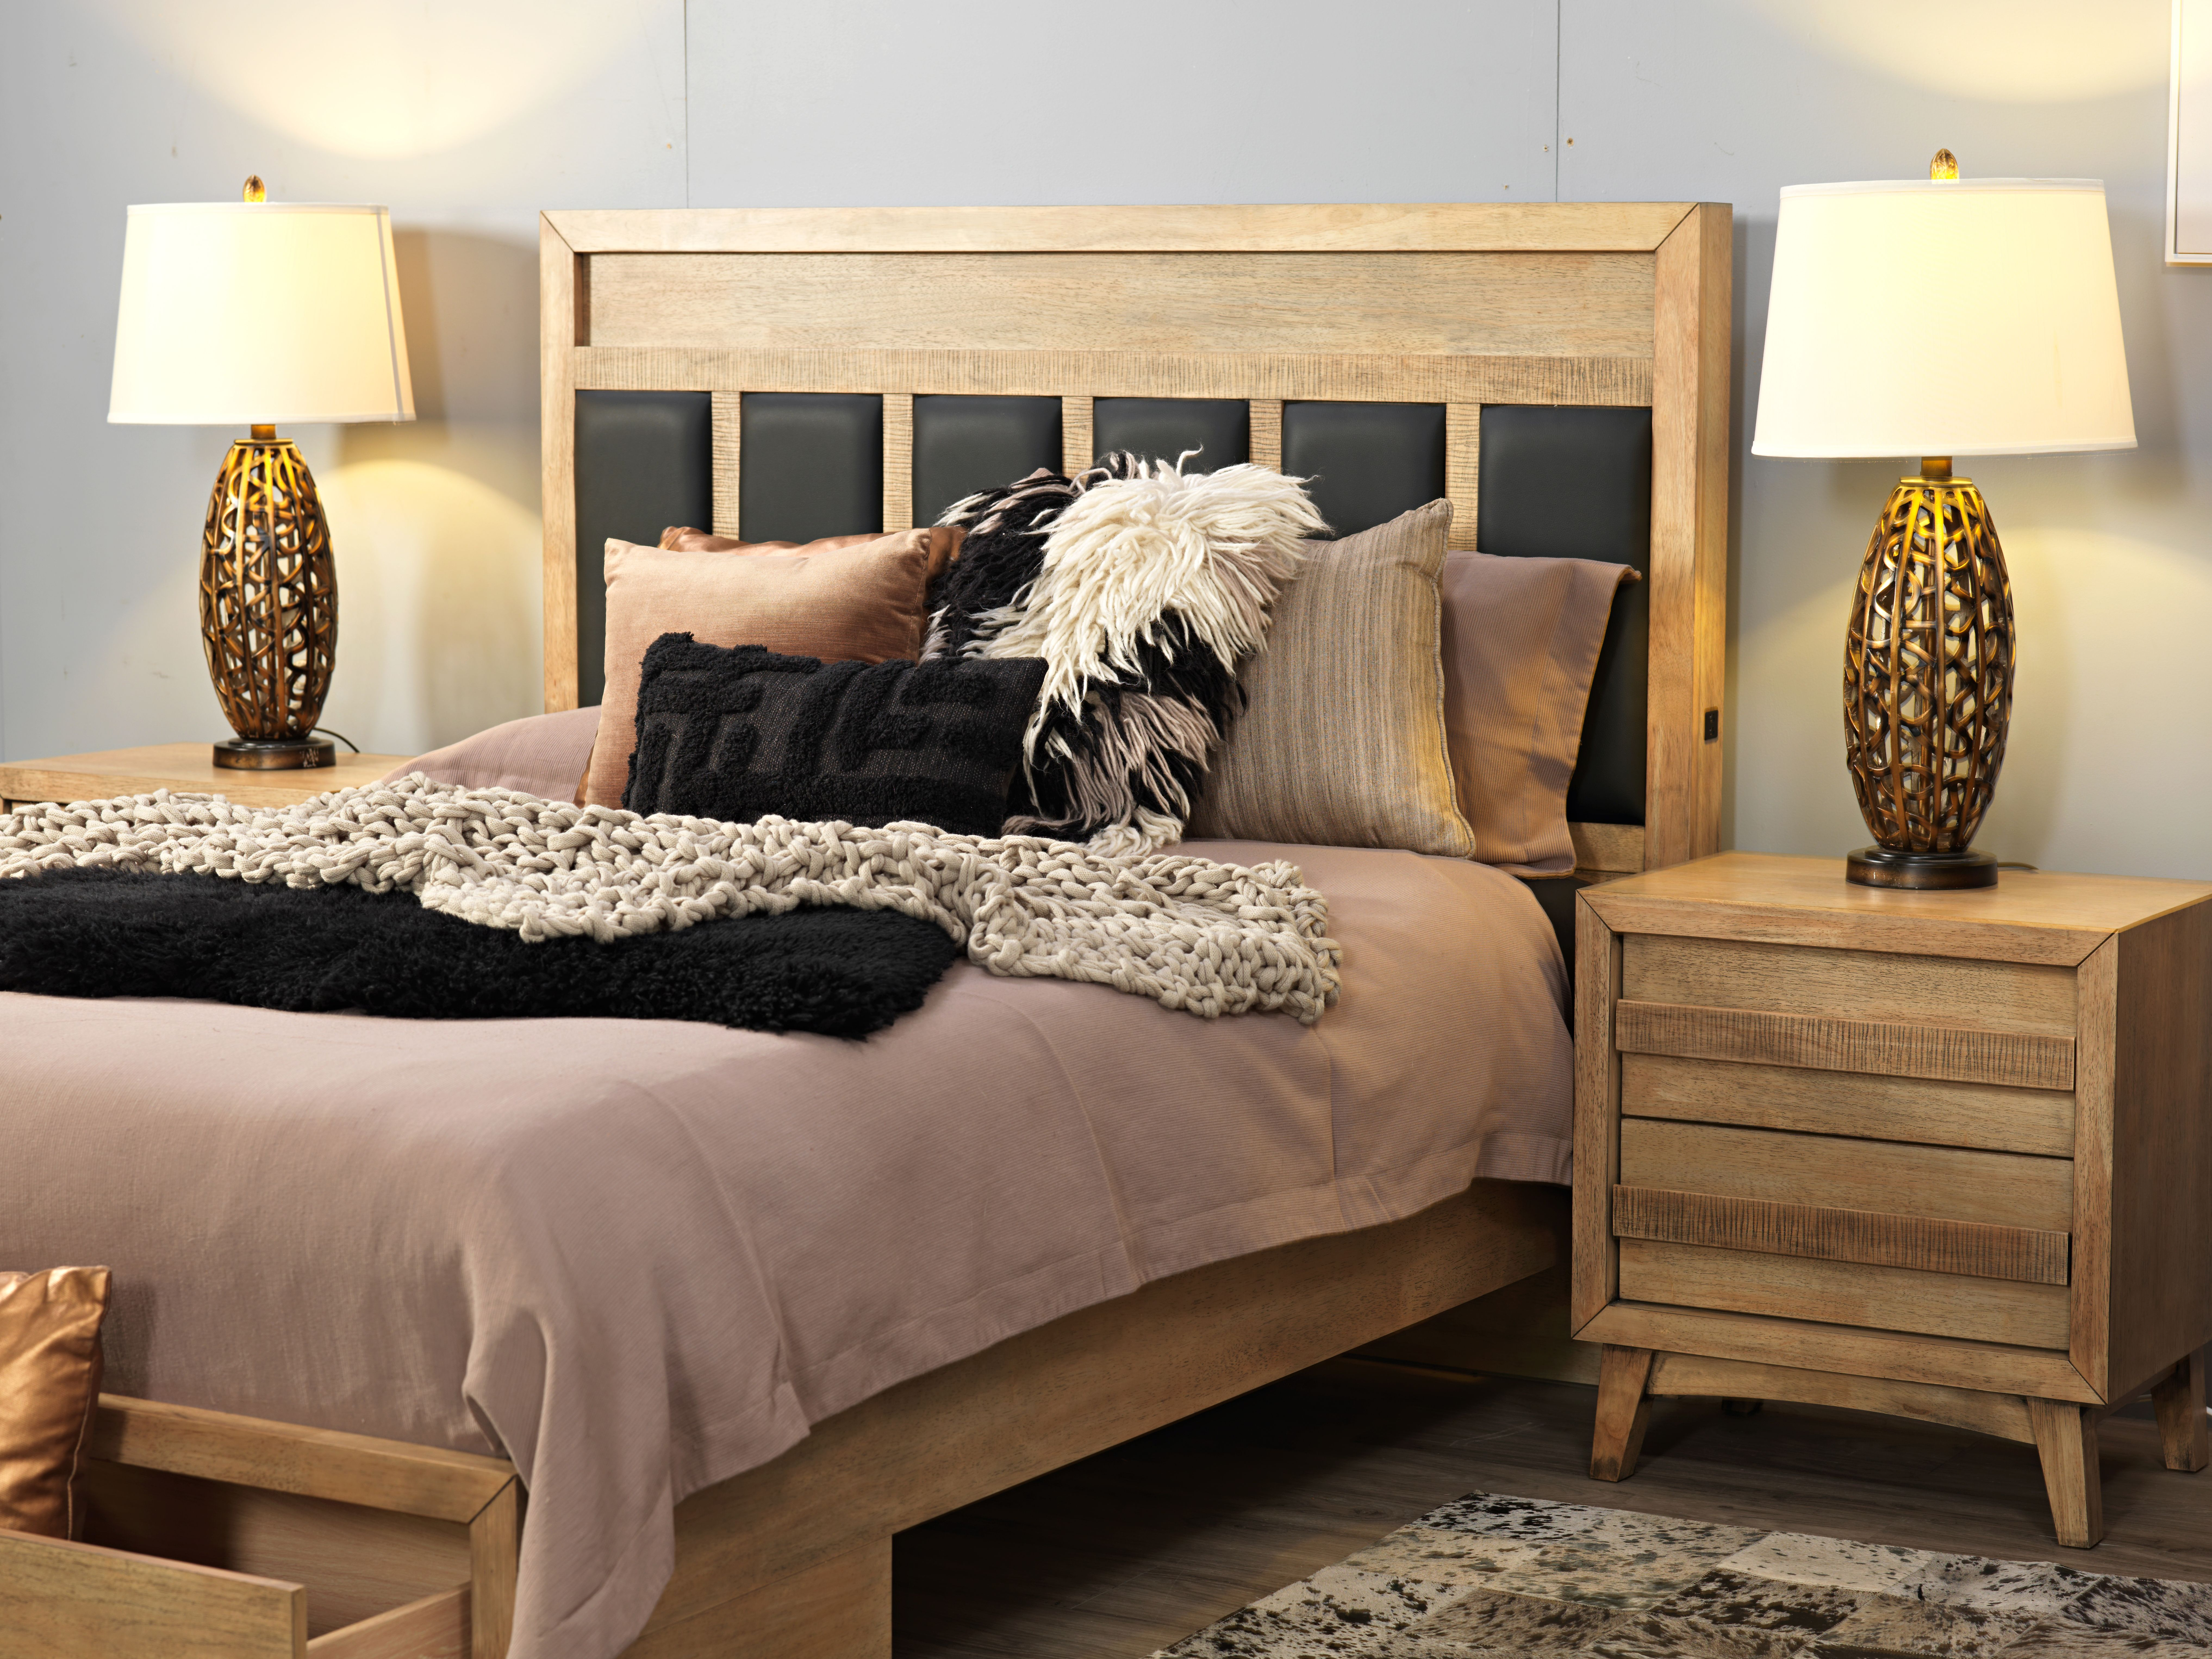 California Queen Bed with Drawer/s Bed, Bed with drawers